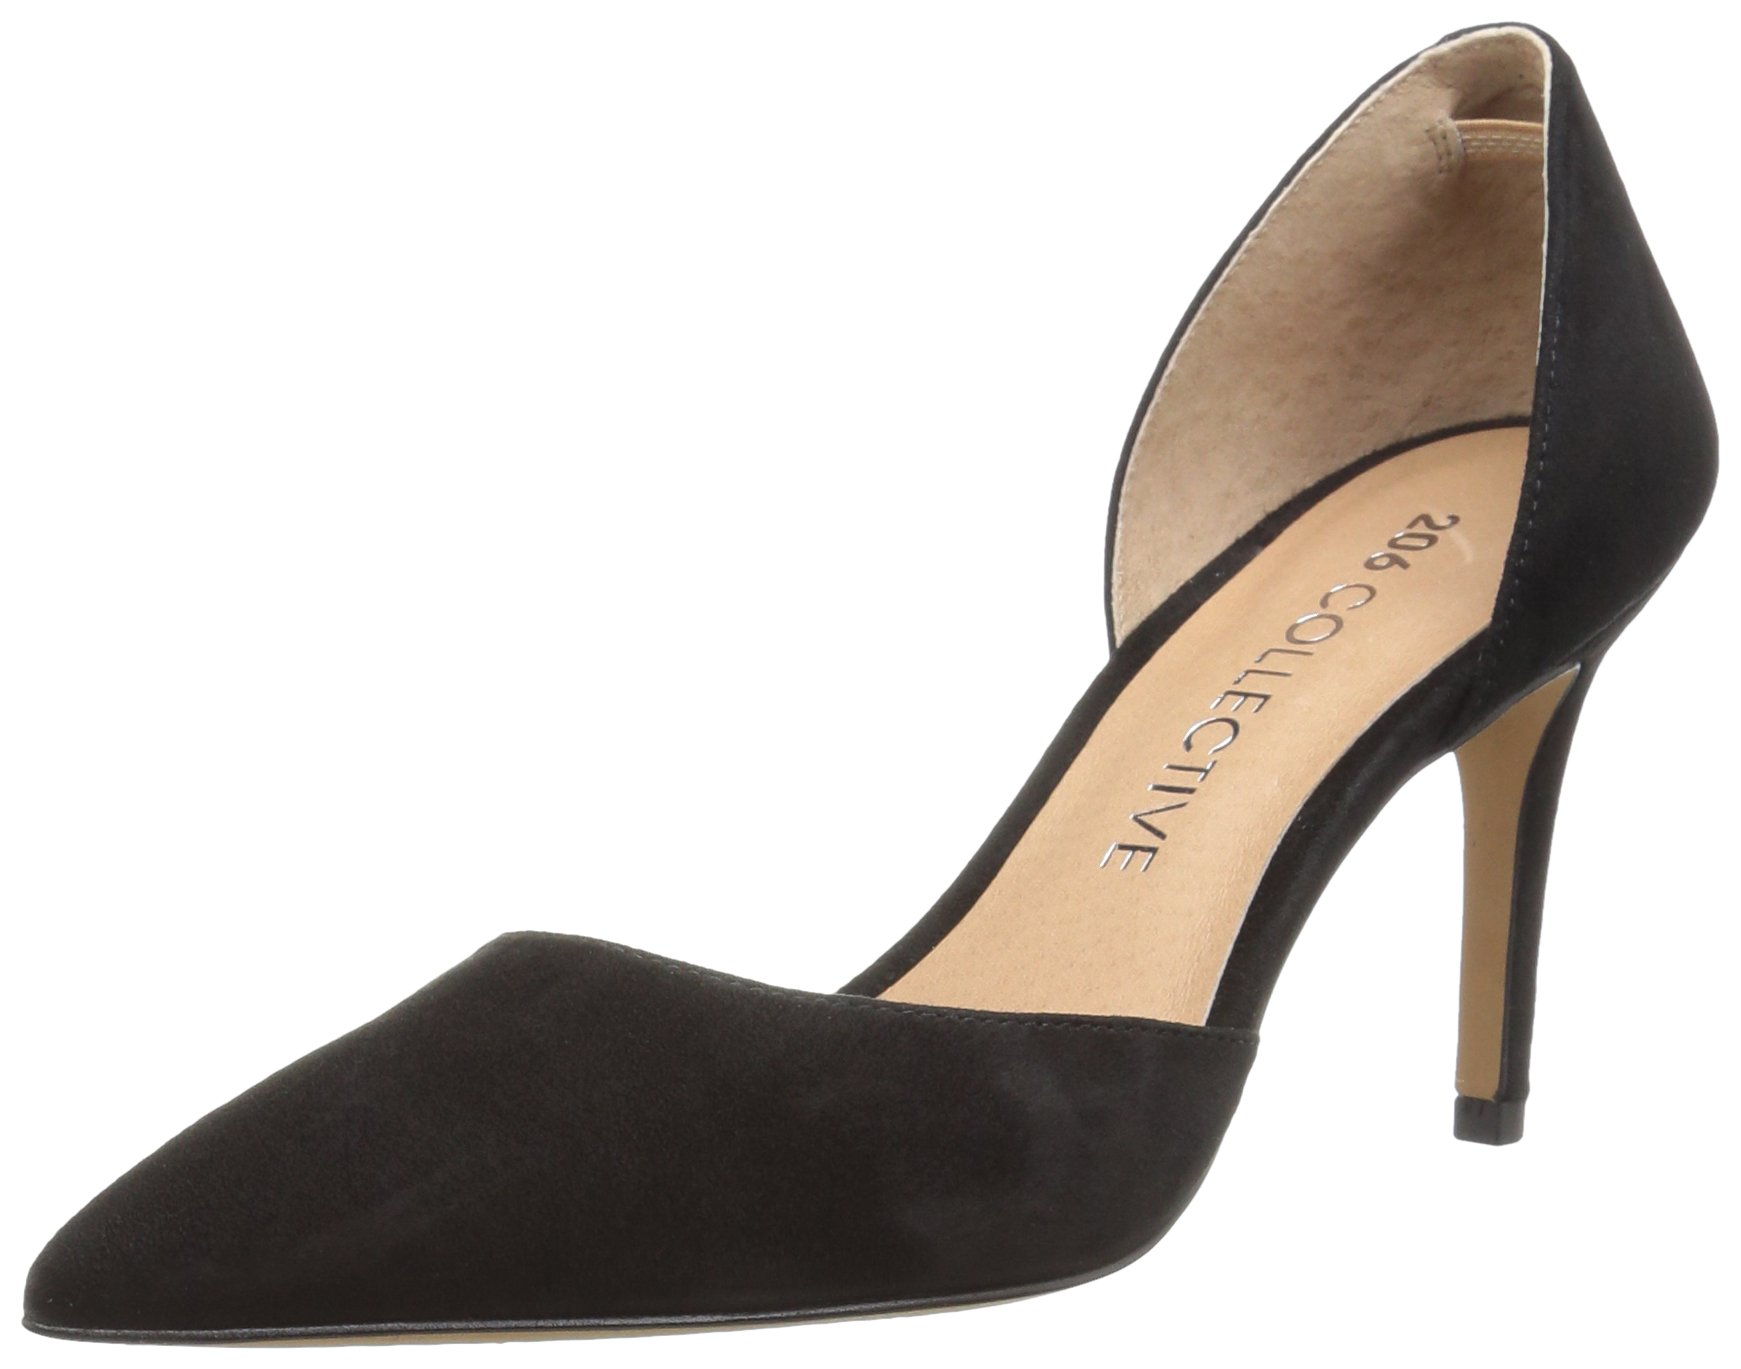 206 Collective Women's Adelaide D'Orsay Dress Pump, Black Suede, 9 B US